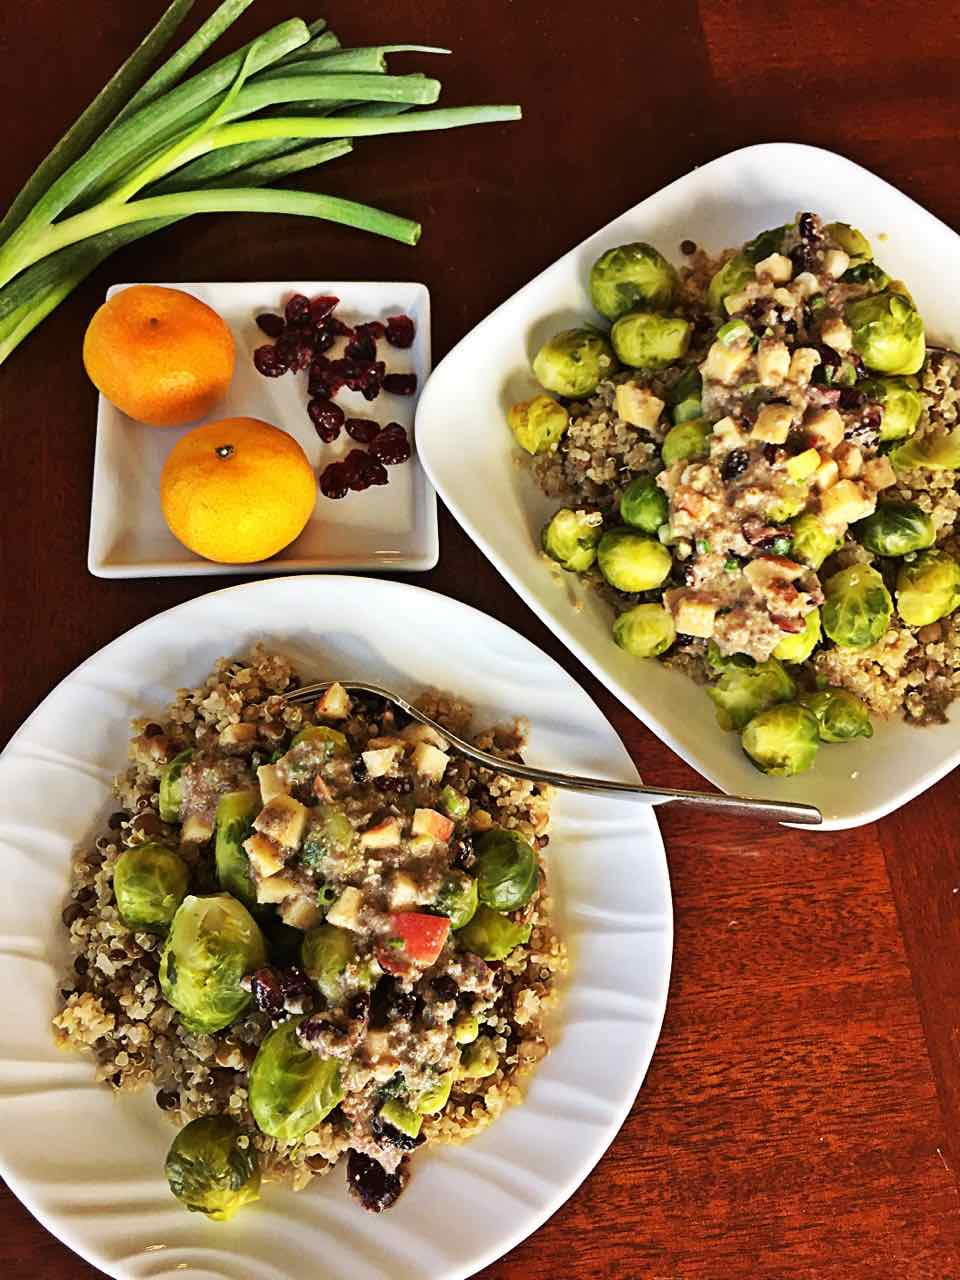 Brussels sprouts quinoa lentils with orange vegan sauce